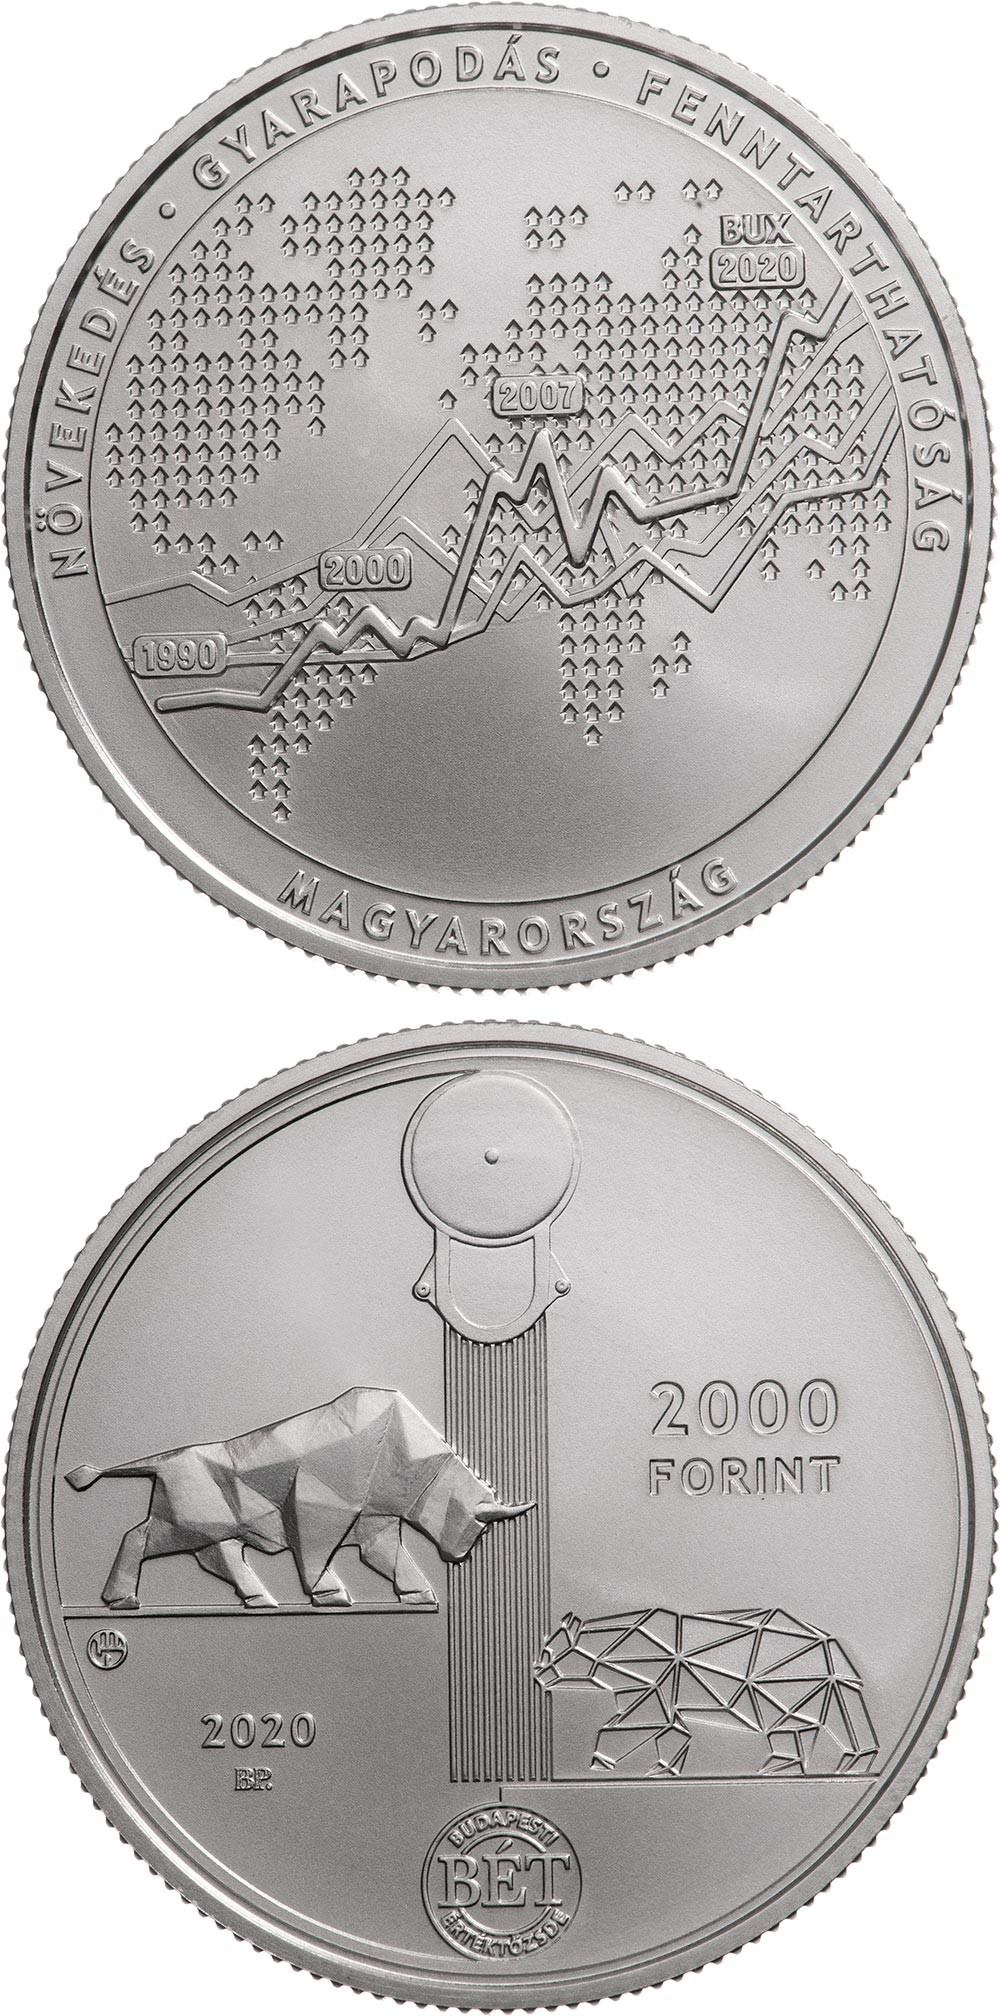 Image of 2000 forint coin - 30th anniversary of the re-establishment of the Budapest Stock Exchange | Hungary 2020.  The Copper–Nickel (CuNi) coin is of BU quality.